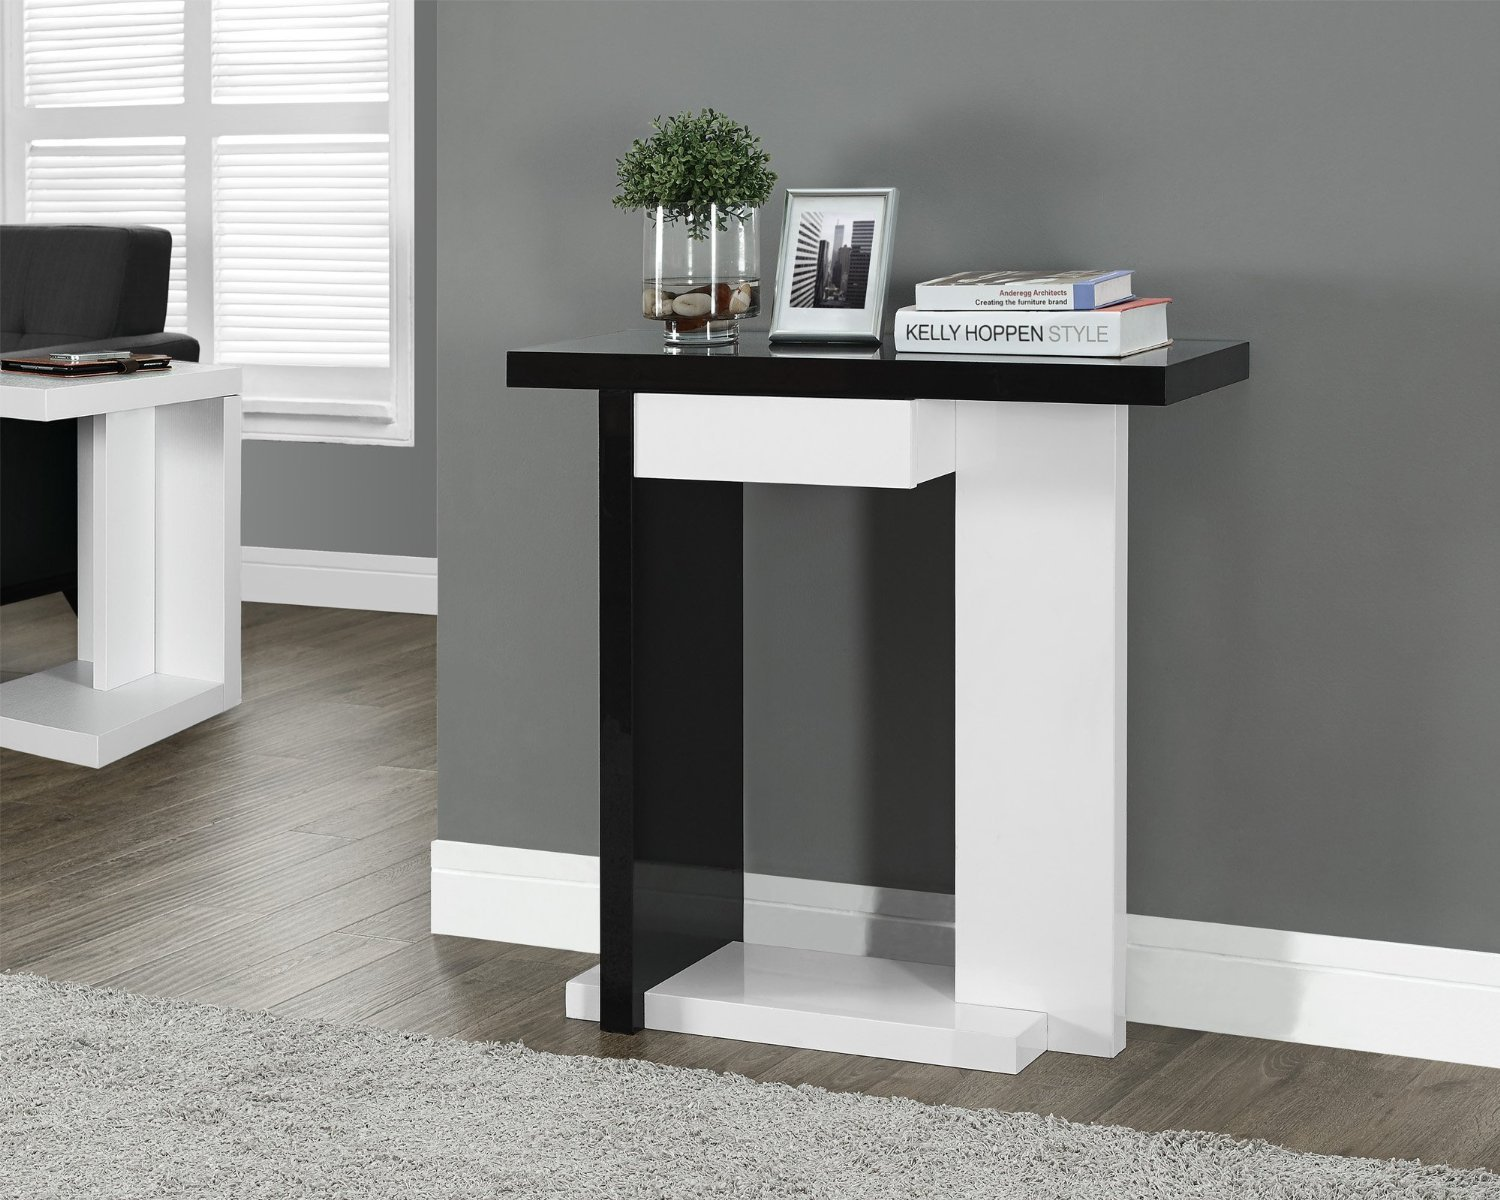 Amazoncom Glossy WhiteBlack Hall Console Accent Sofa Table with